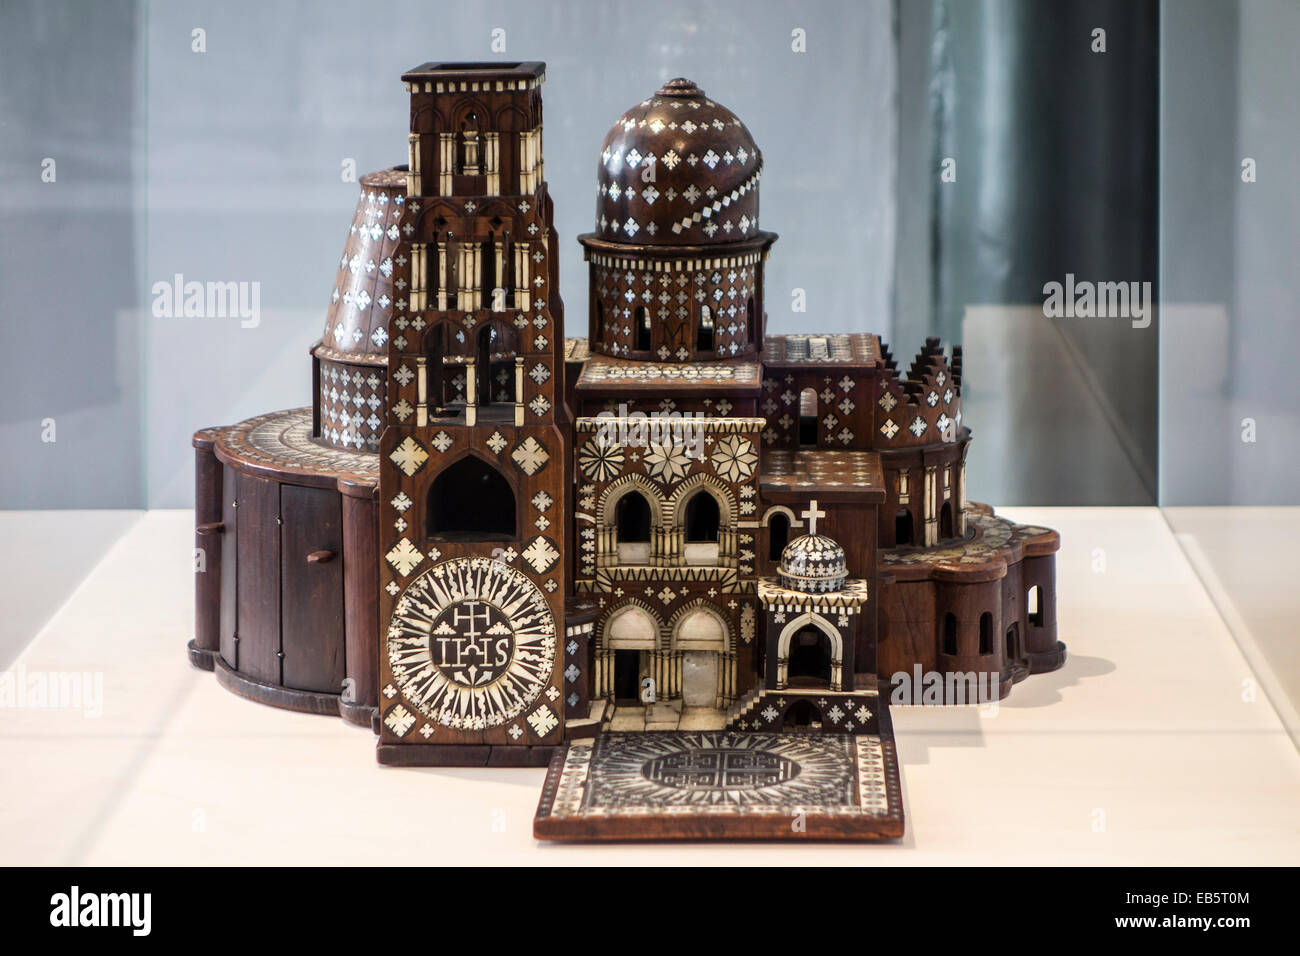 Ebony and ivory replica of Jerusalem's Church of the Holy Sepulchre, fashioned in the late 17th century by Franciscan - Stock Image